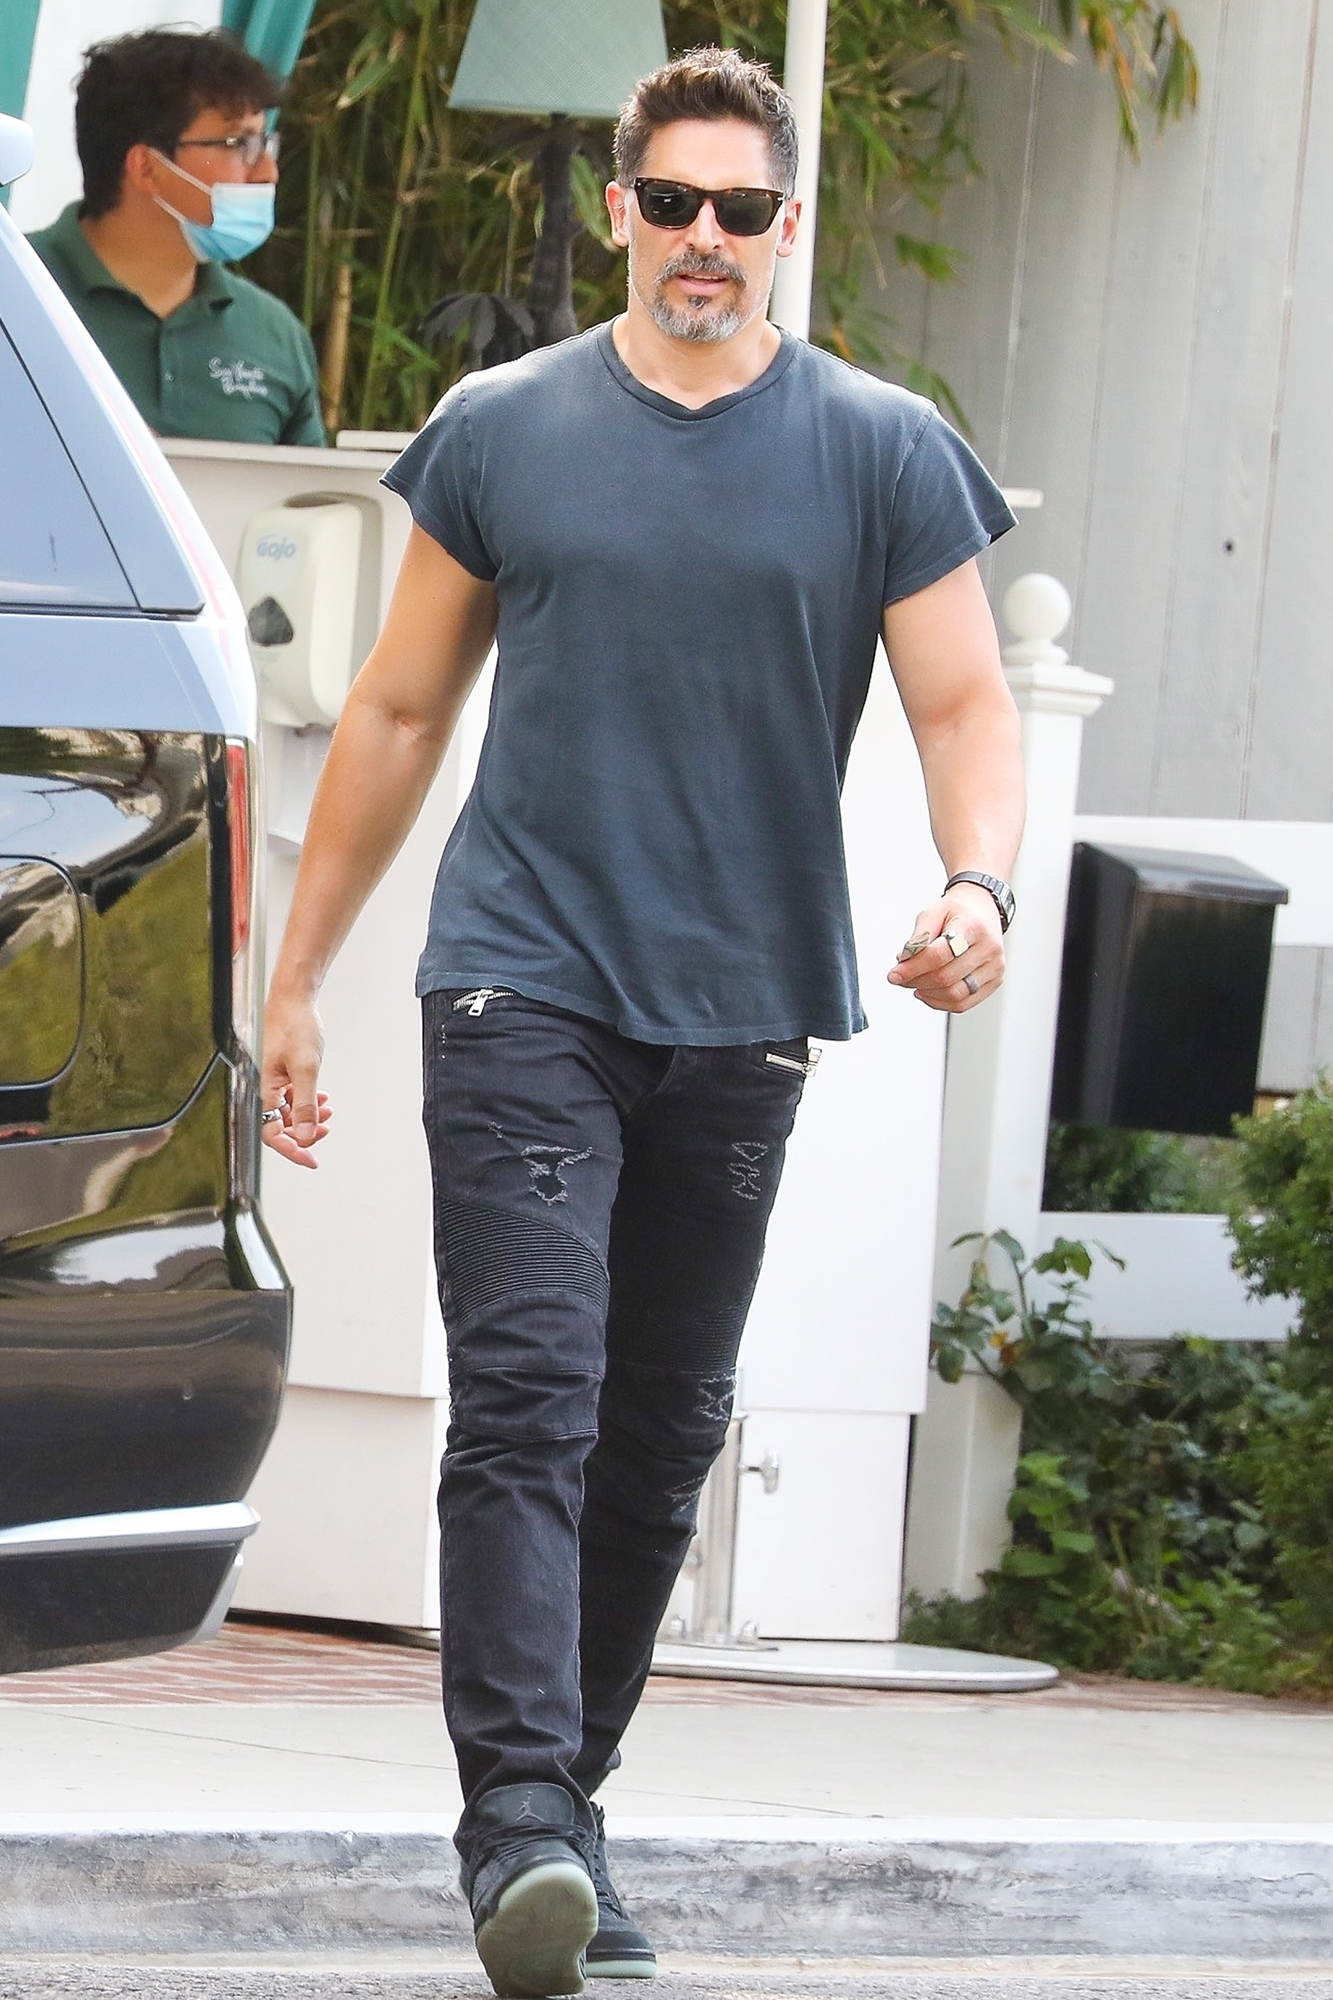 Joe Manganiello picks up his SUV with the valet at The Bungalow after attending a business meeting.